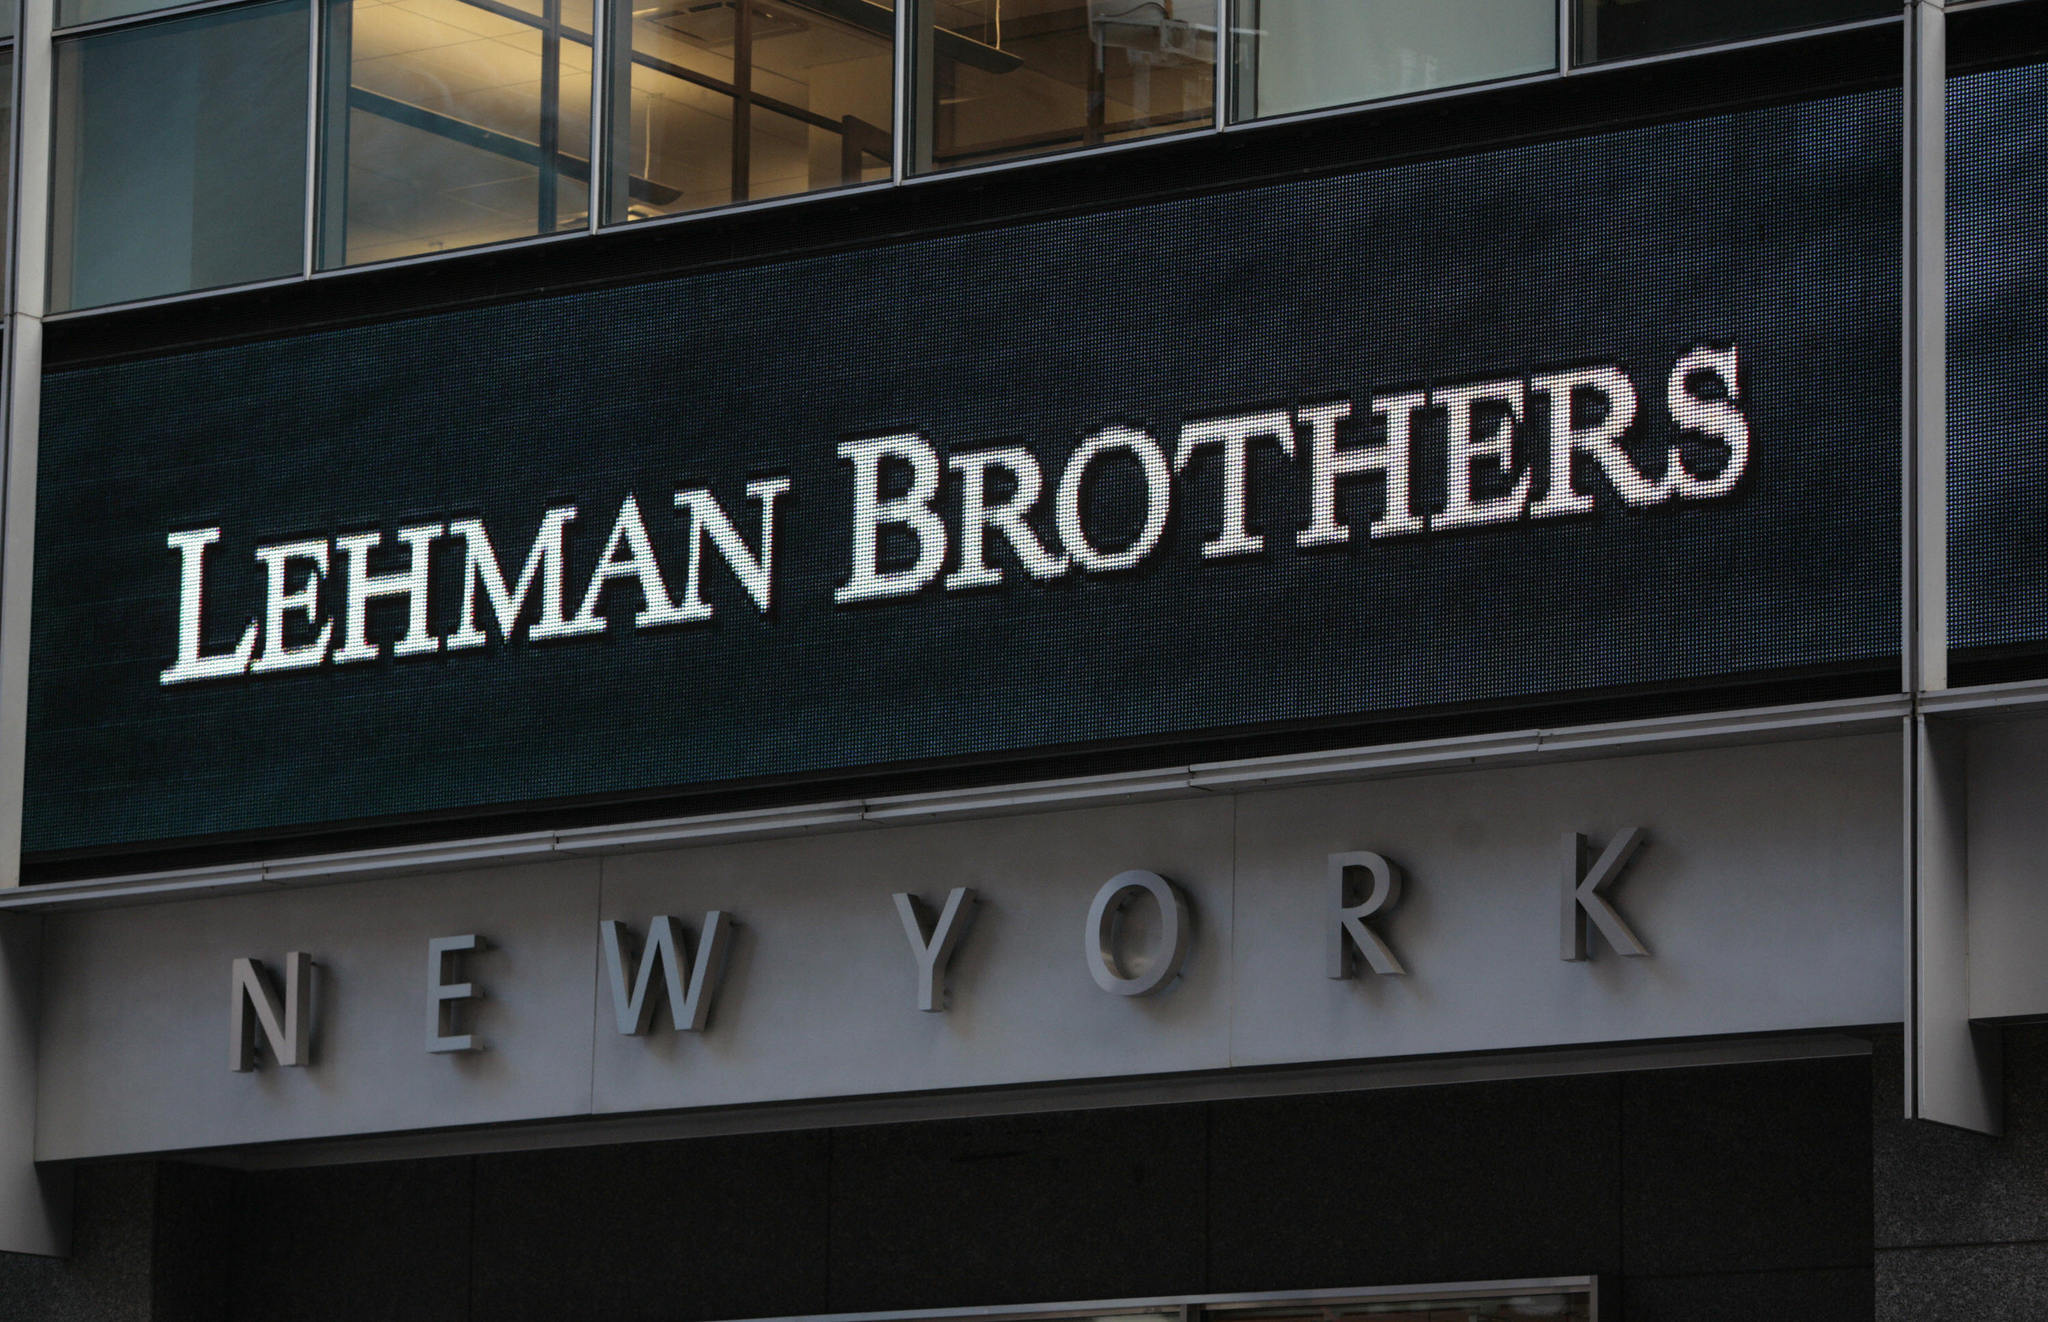 lehmann brothers bankruptcy United states bankruptcy court southern district of new york in re lehman brothers holdings inc lehman's bankruptcy filing1535 volume 5 section iiib: avoidance actions b.